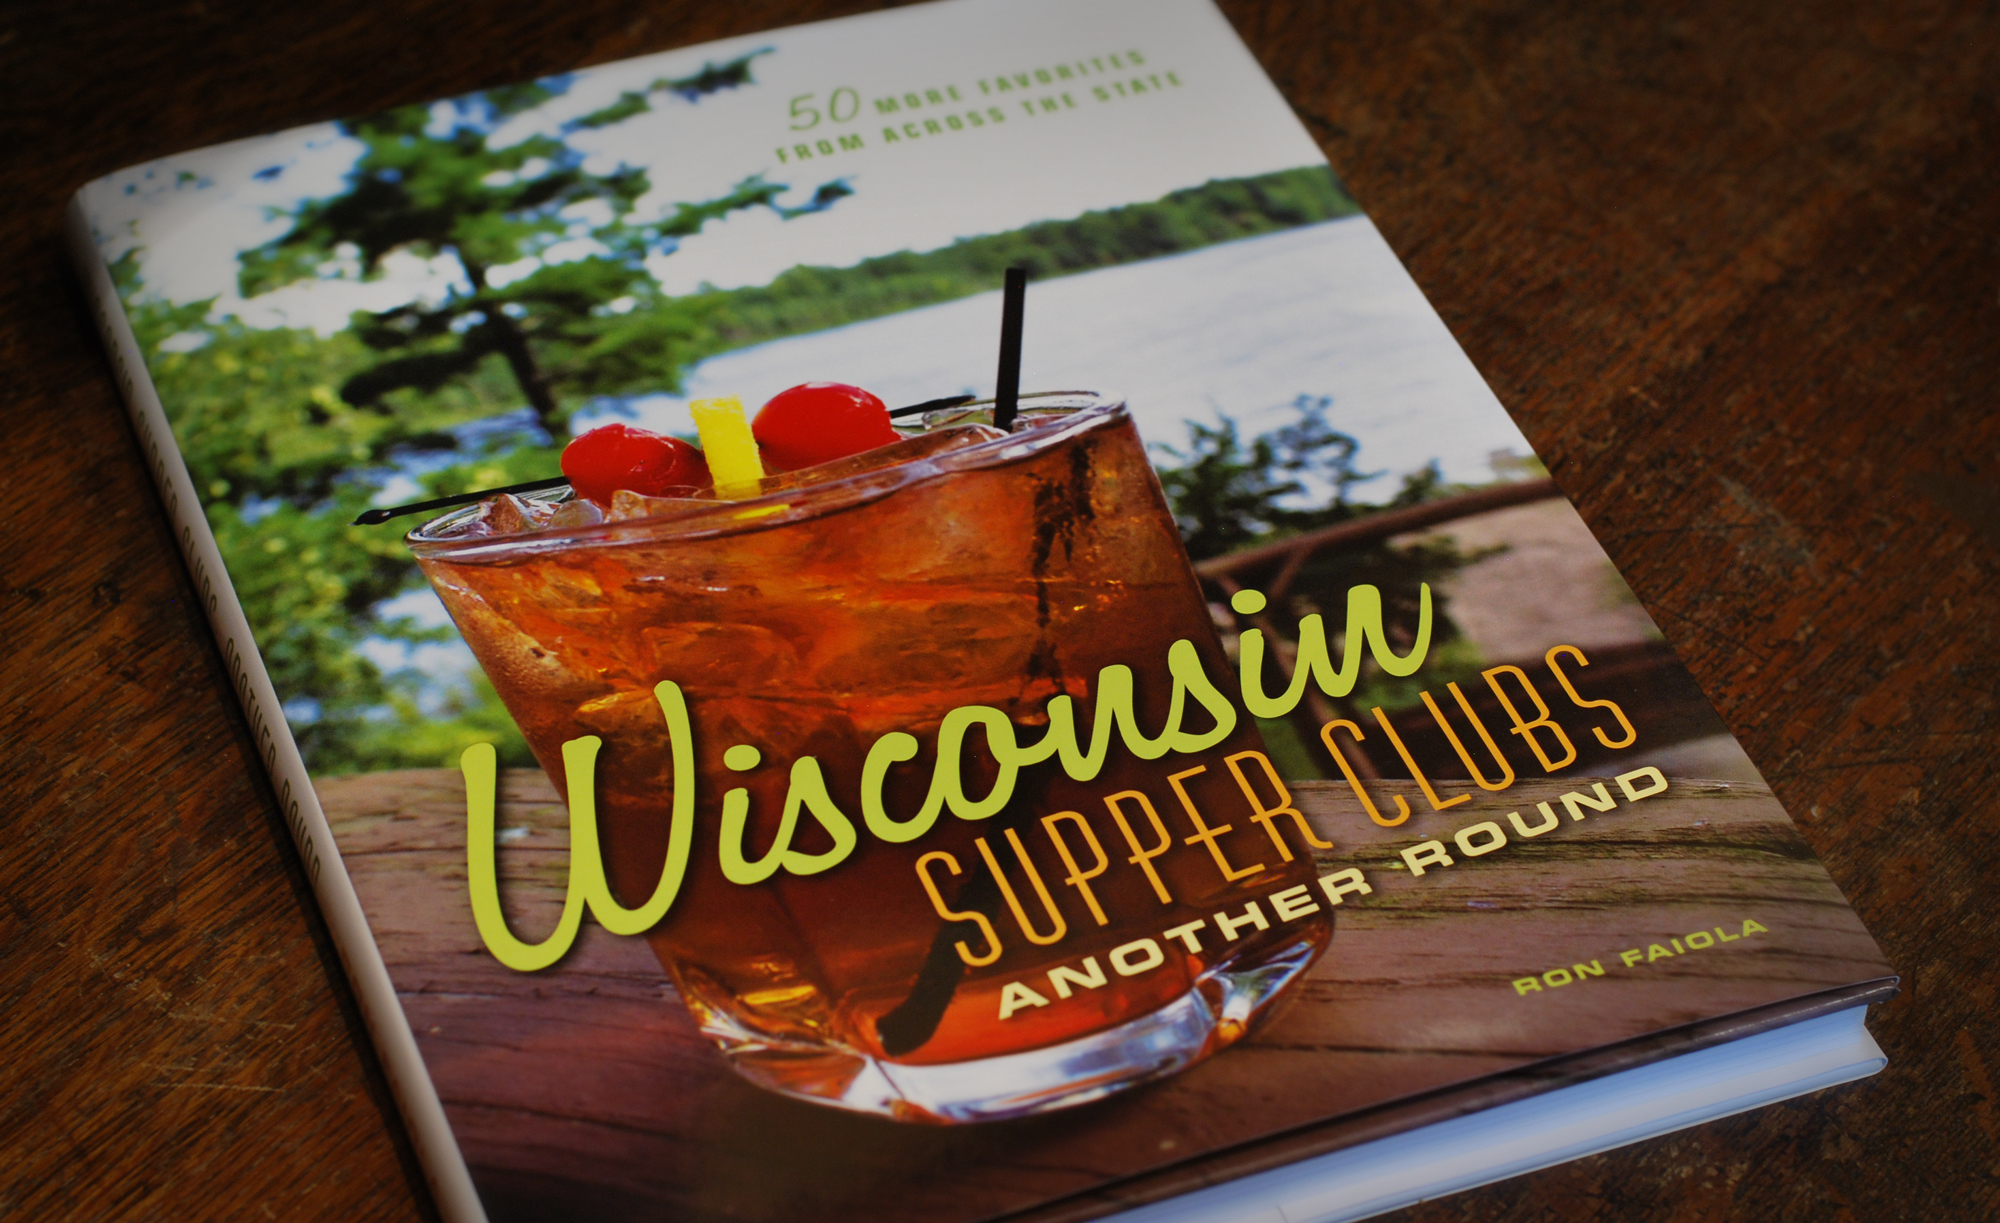 WIsconsin Supper Clubs, Another Round, by Ron Faiola